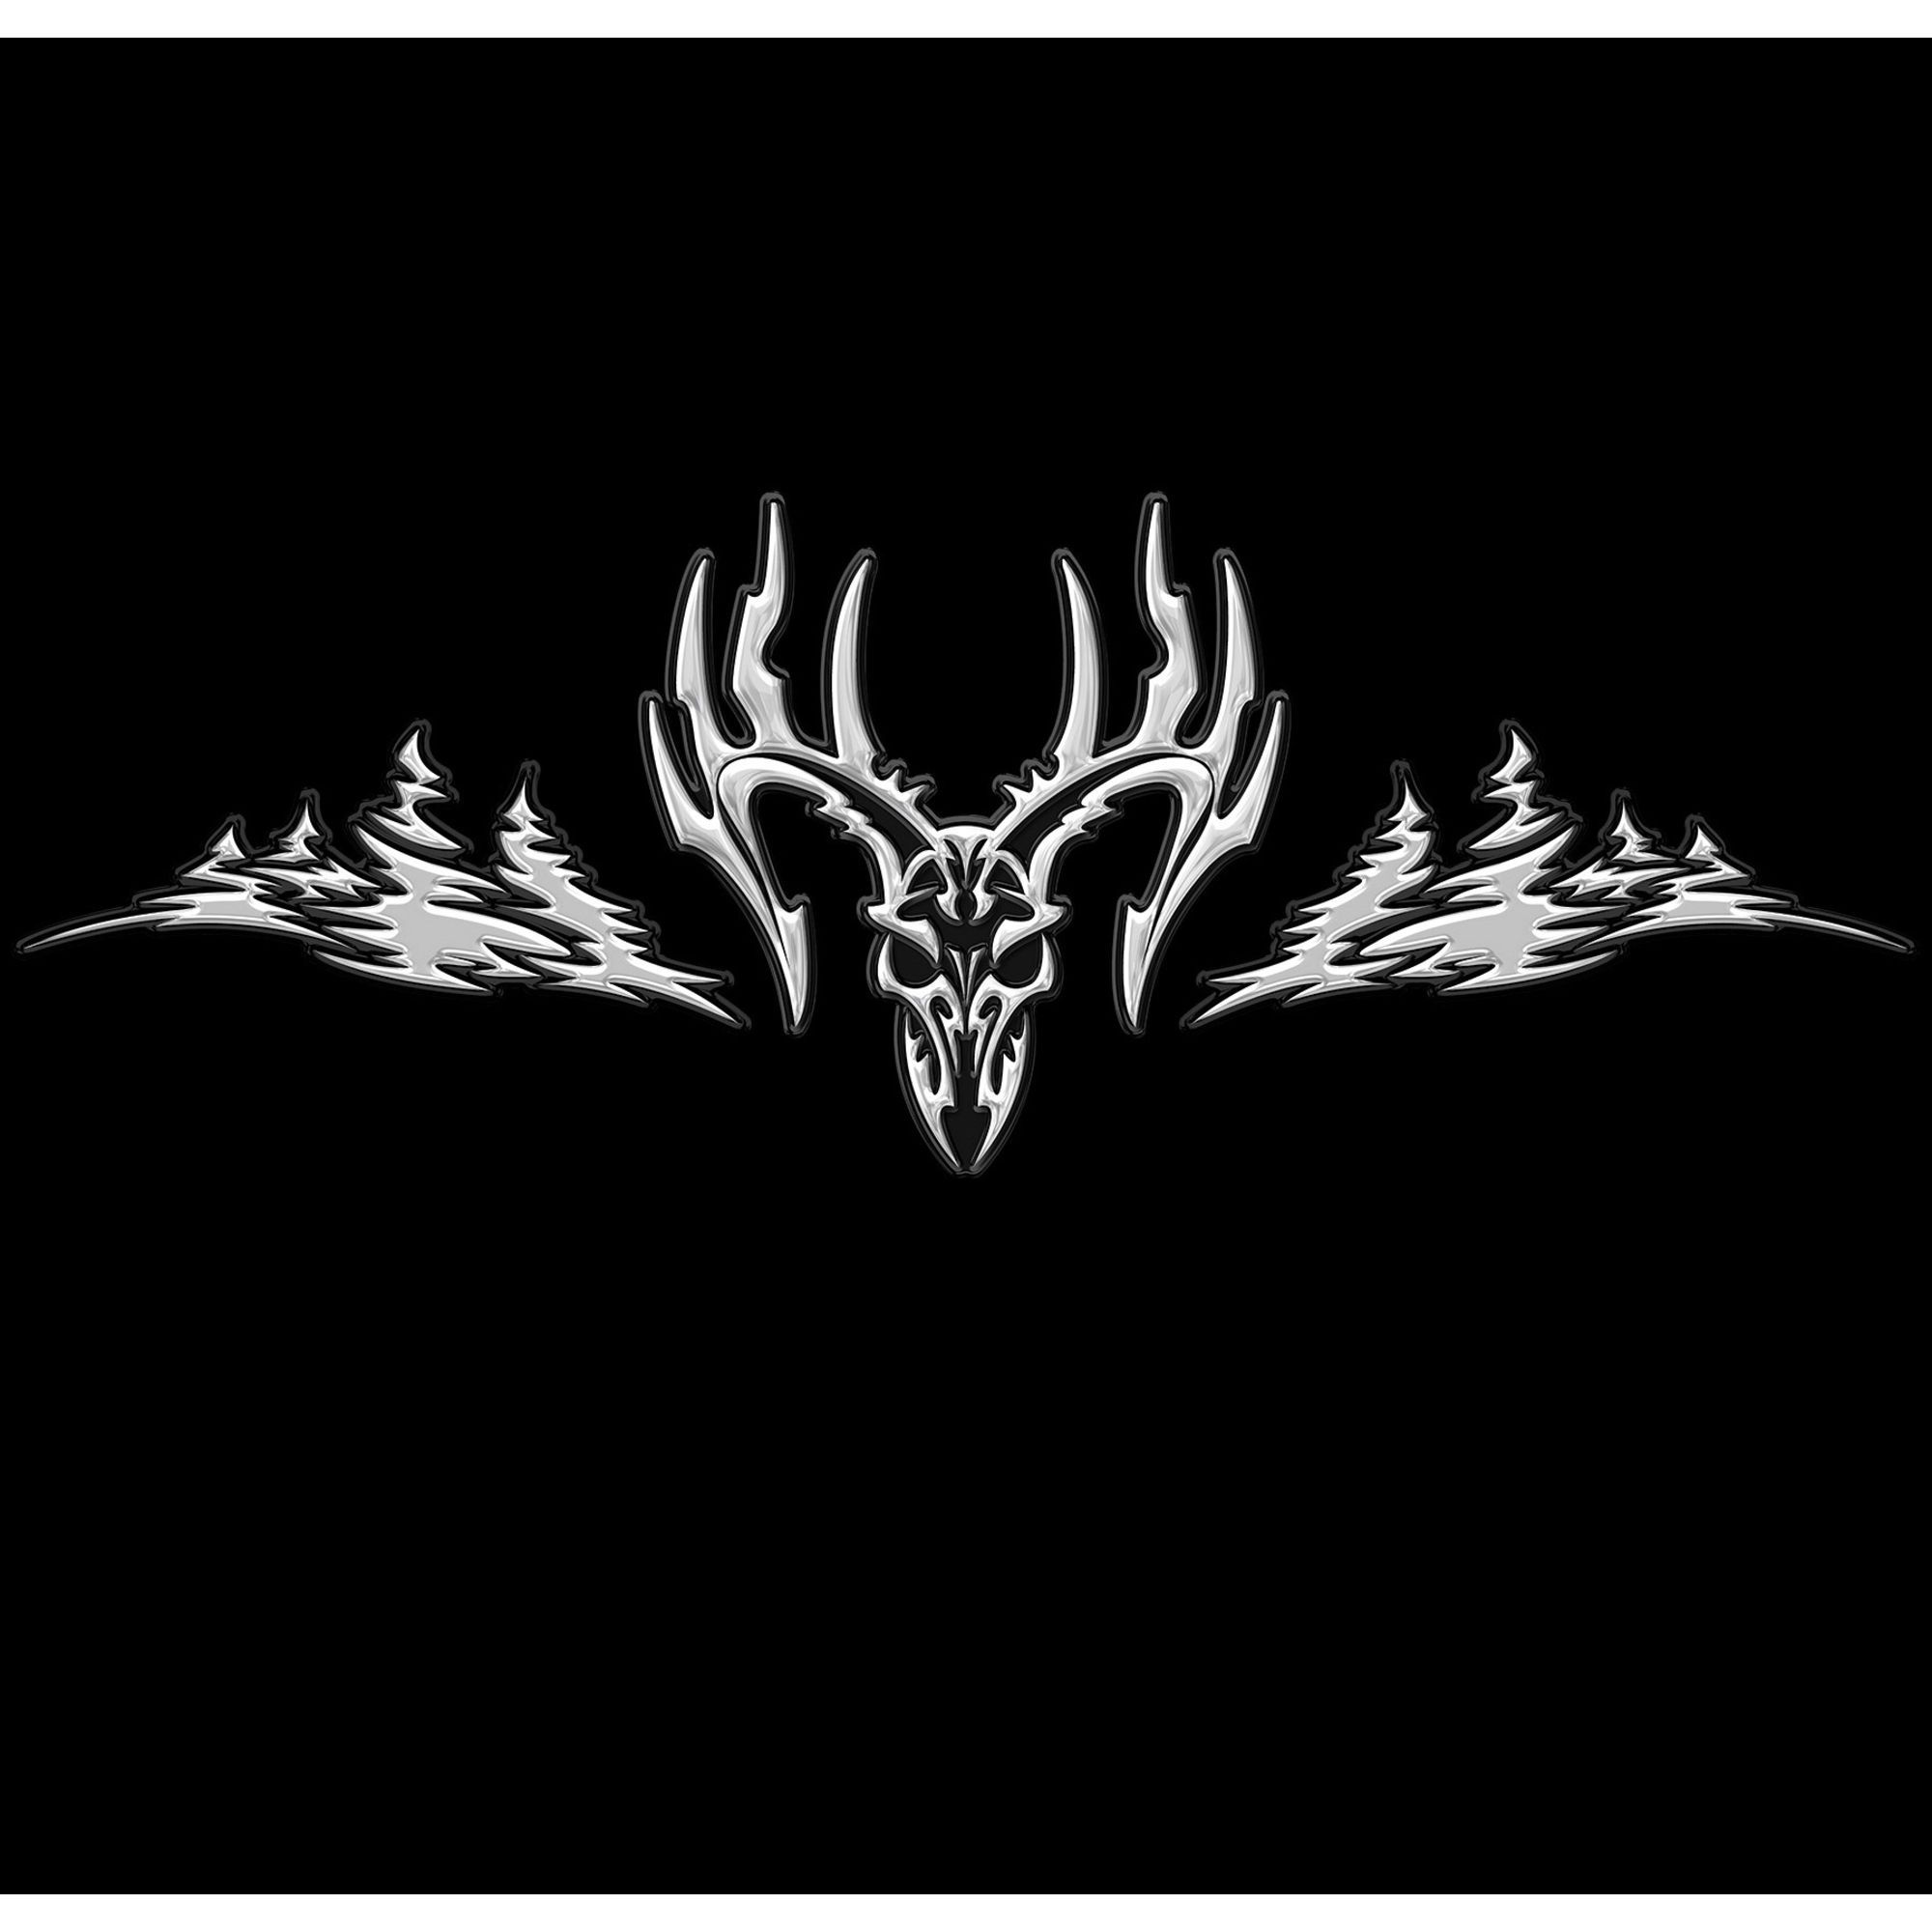 The Intimidator Decal Legendary Whitetails - Rear window hunting decals for truckstruck decals stickers rear window graphics legendary whitetails